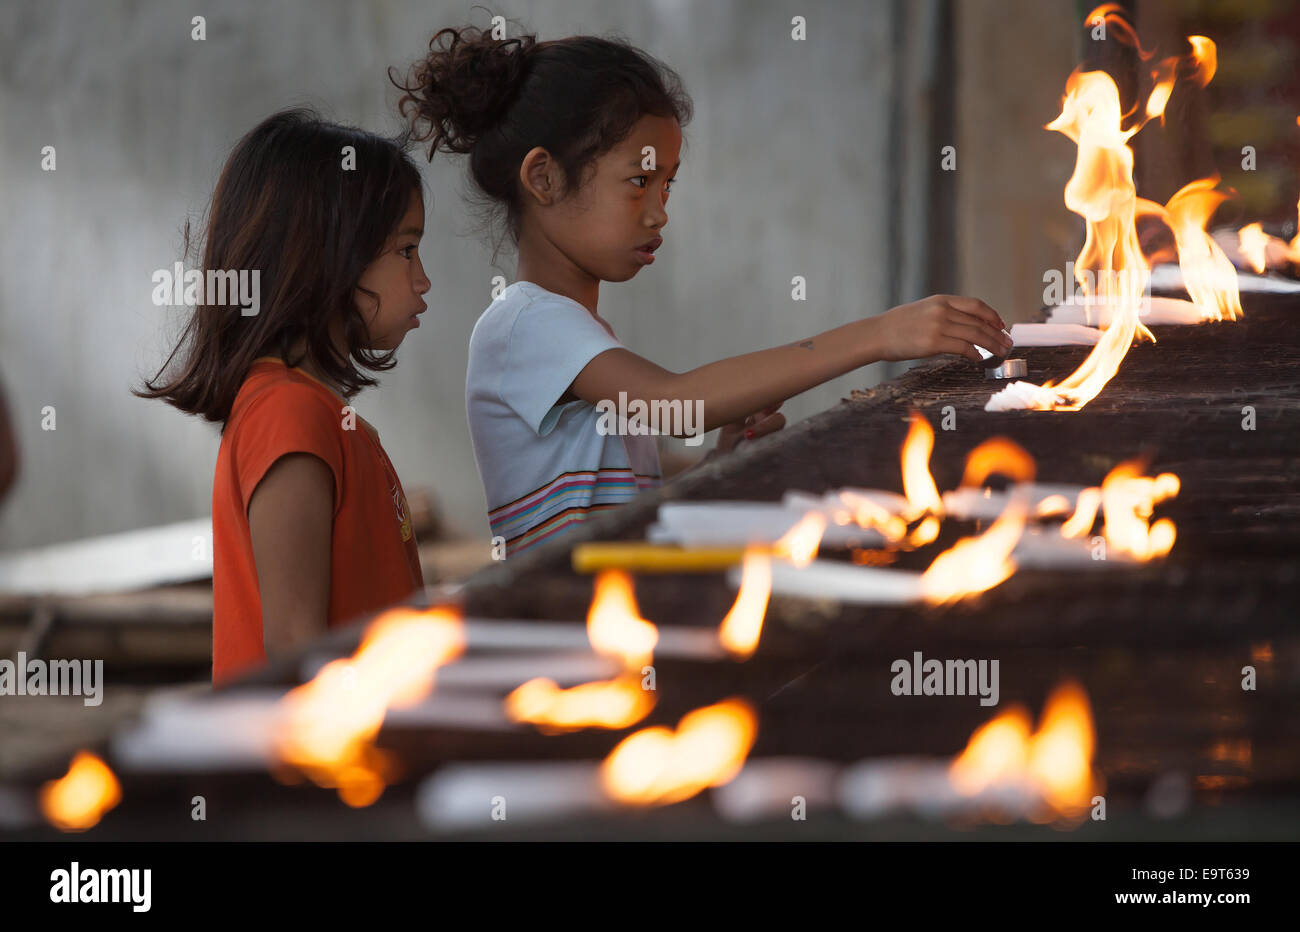 All Saints Day & All Souls Day falling on the 1st November & 2nd November respectively is one of the busiest - Stock Image